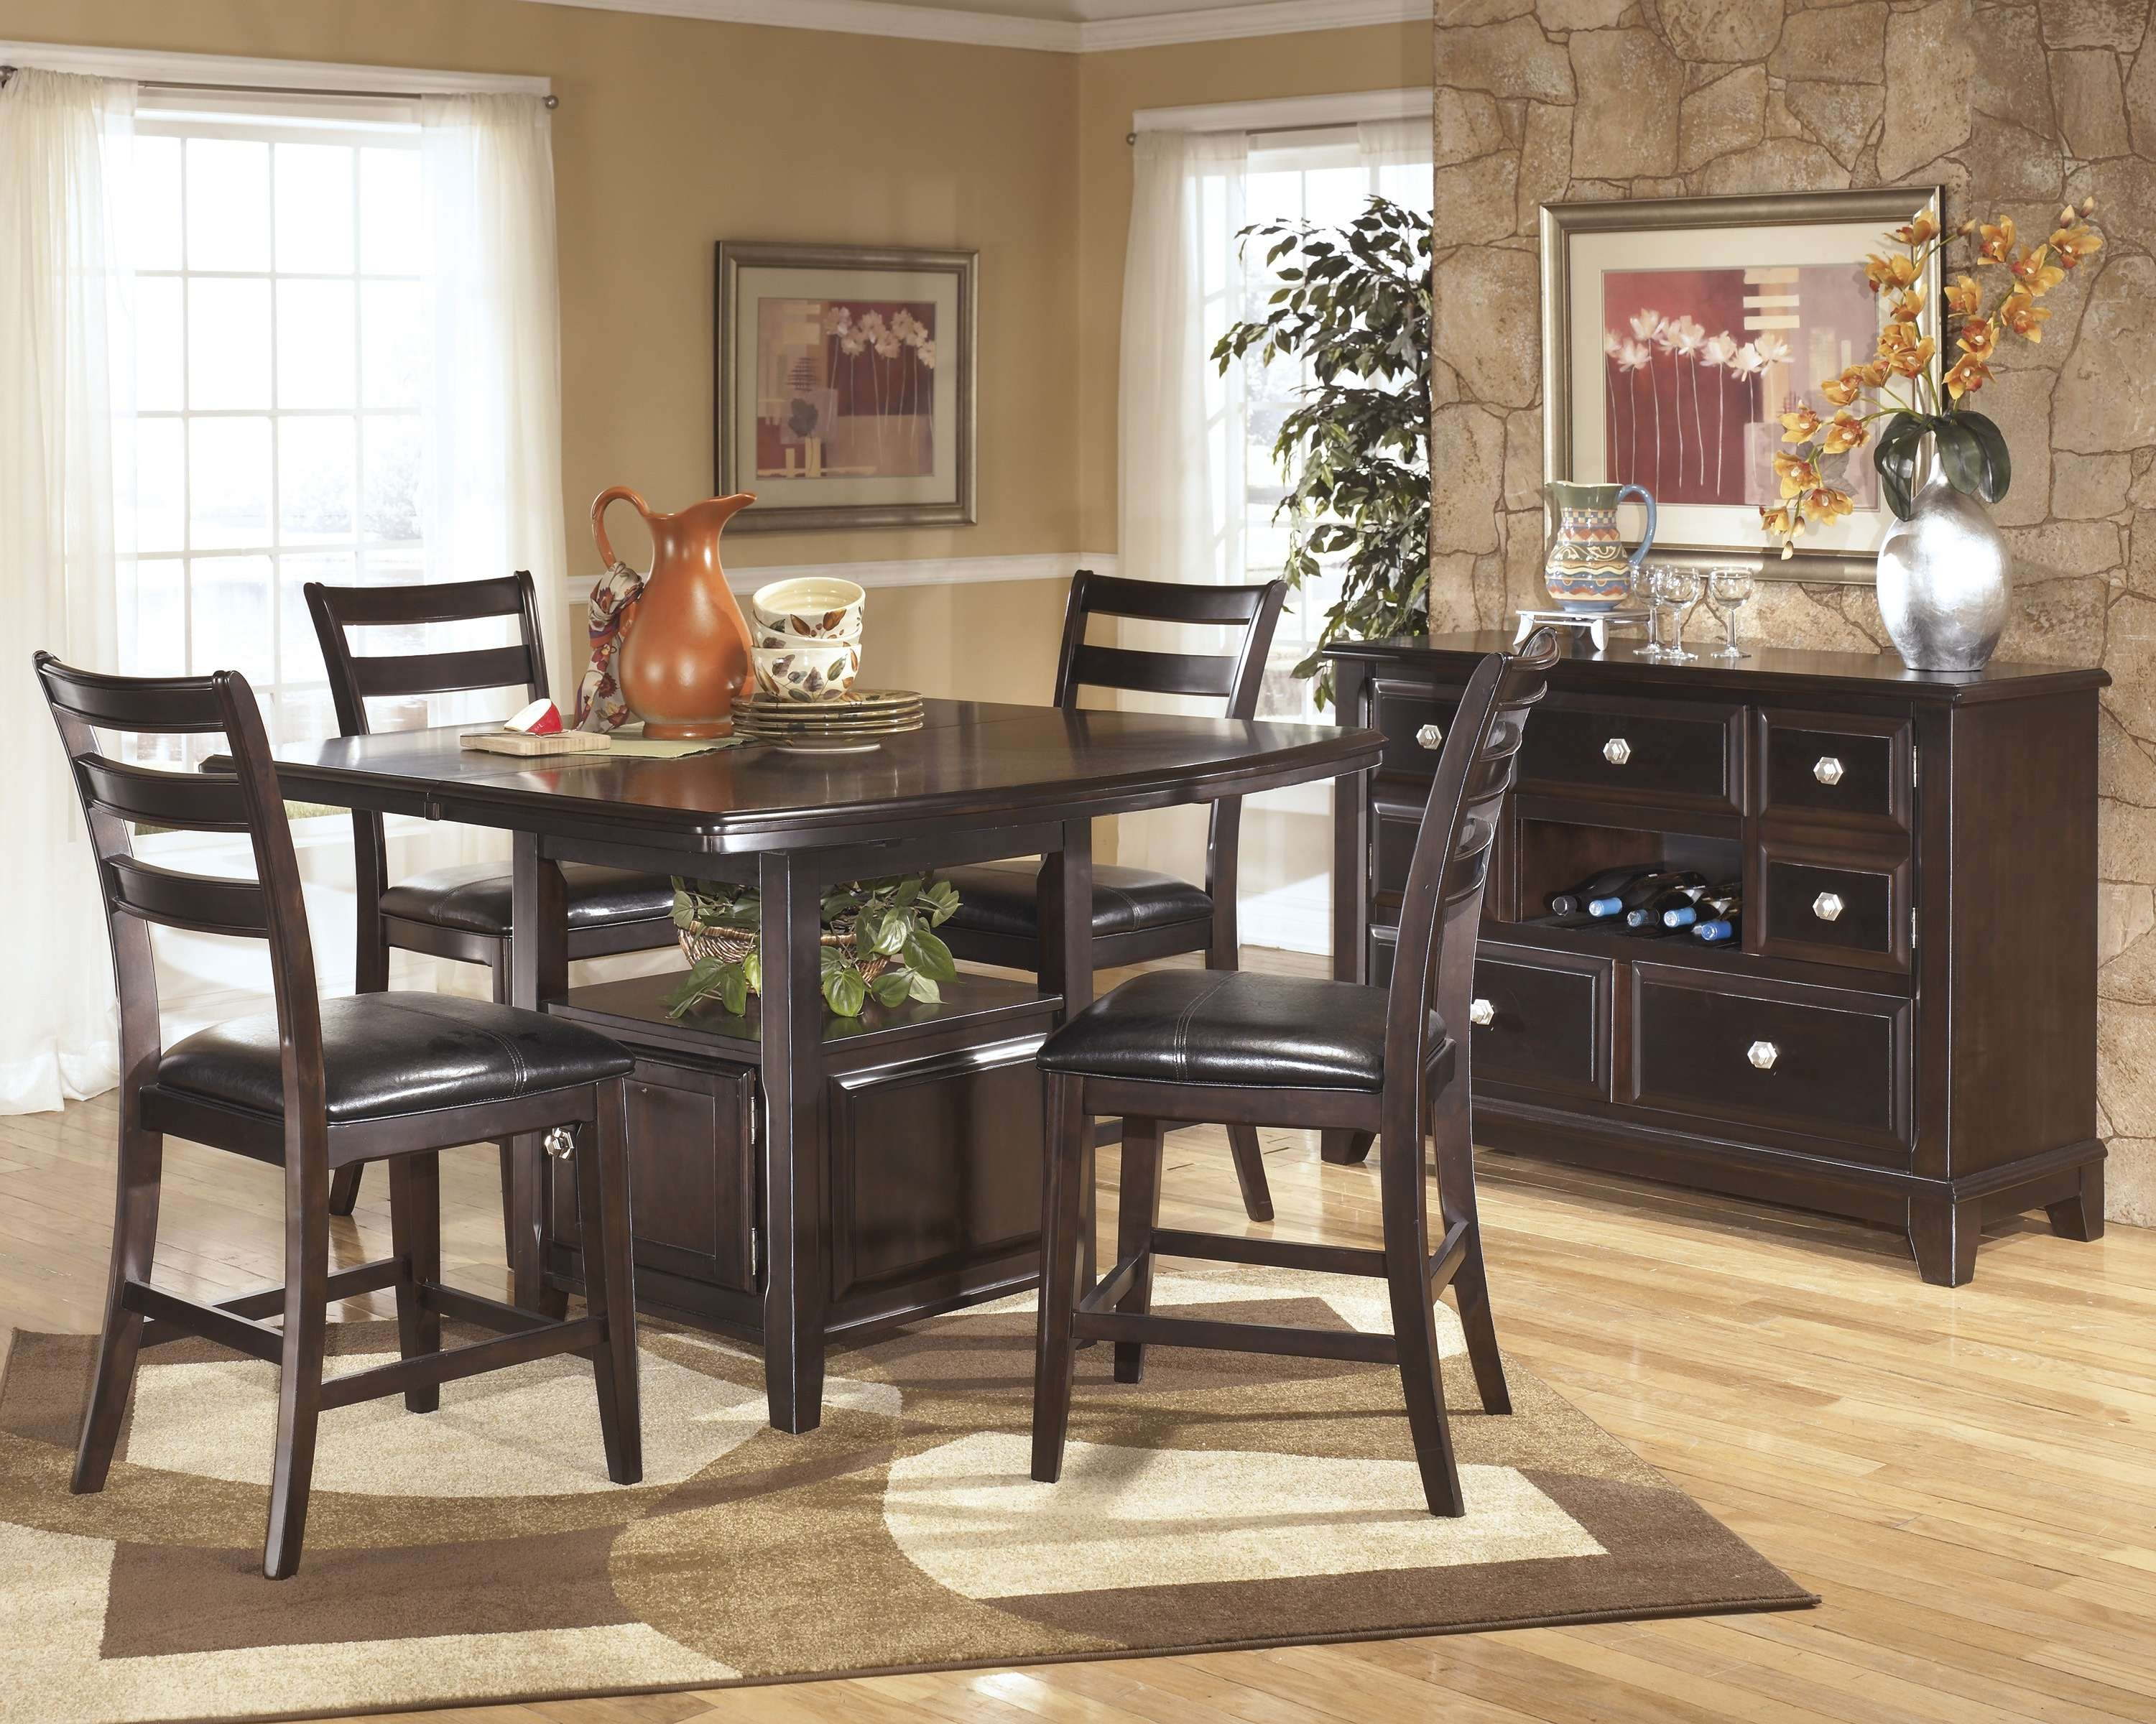 Surprising ridgley dining room set ideas exterior ideas 3d gaml 20 inspirations of black dining room sideboards dzzzfo